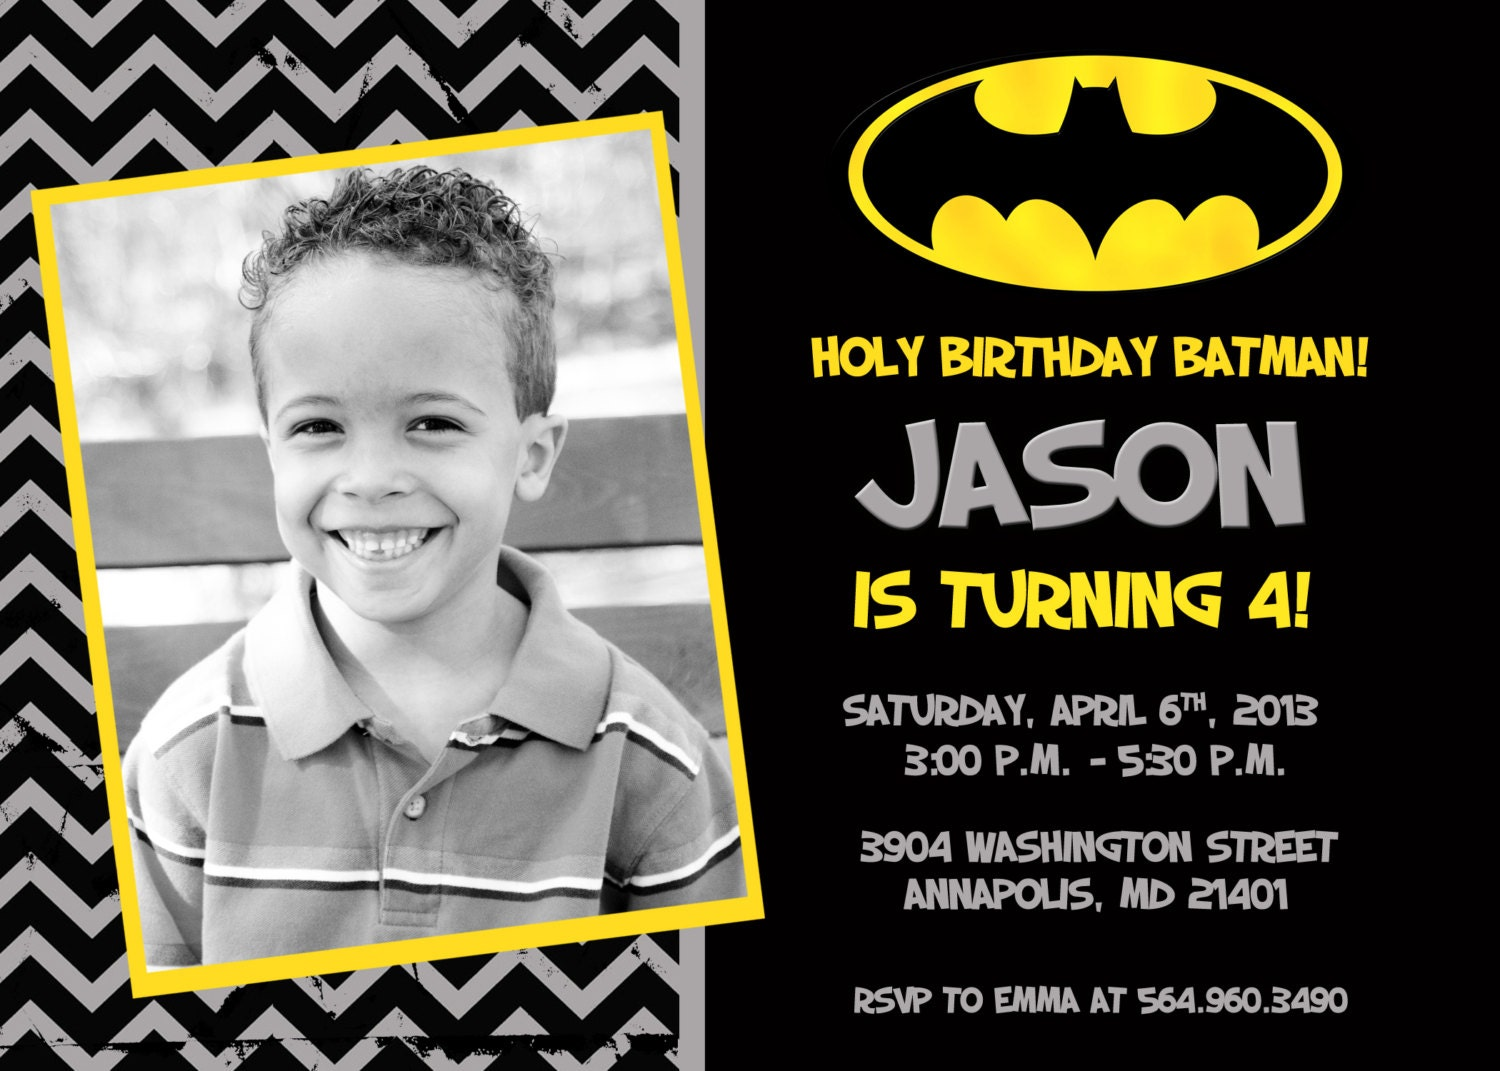 632 373 Kb Jpeg Batman Birthday Invitation Templates Free